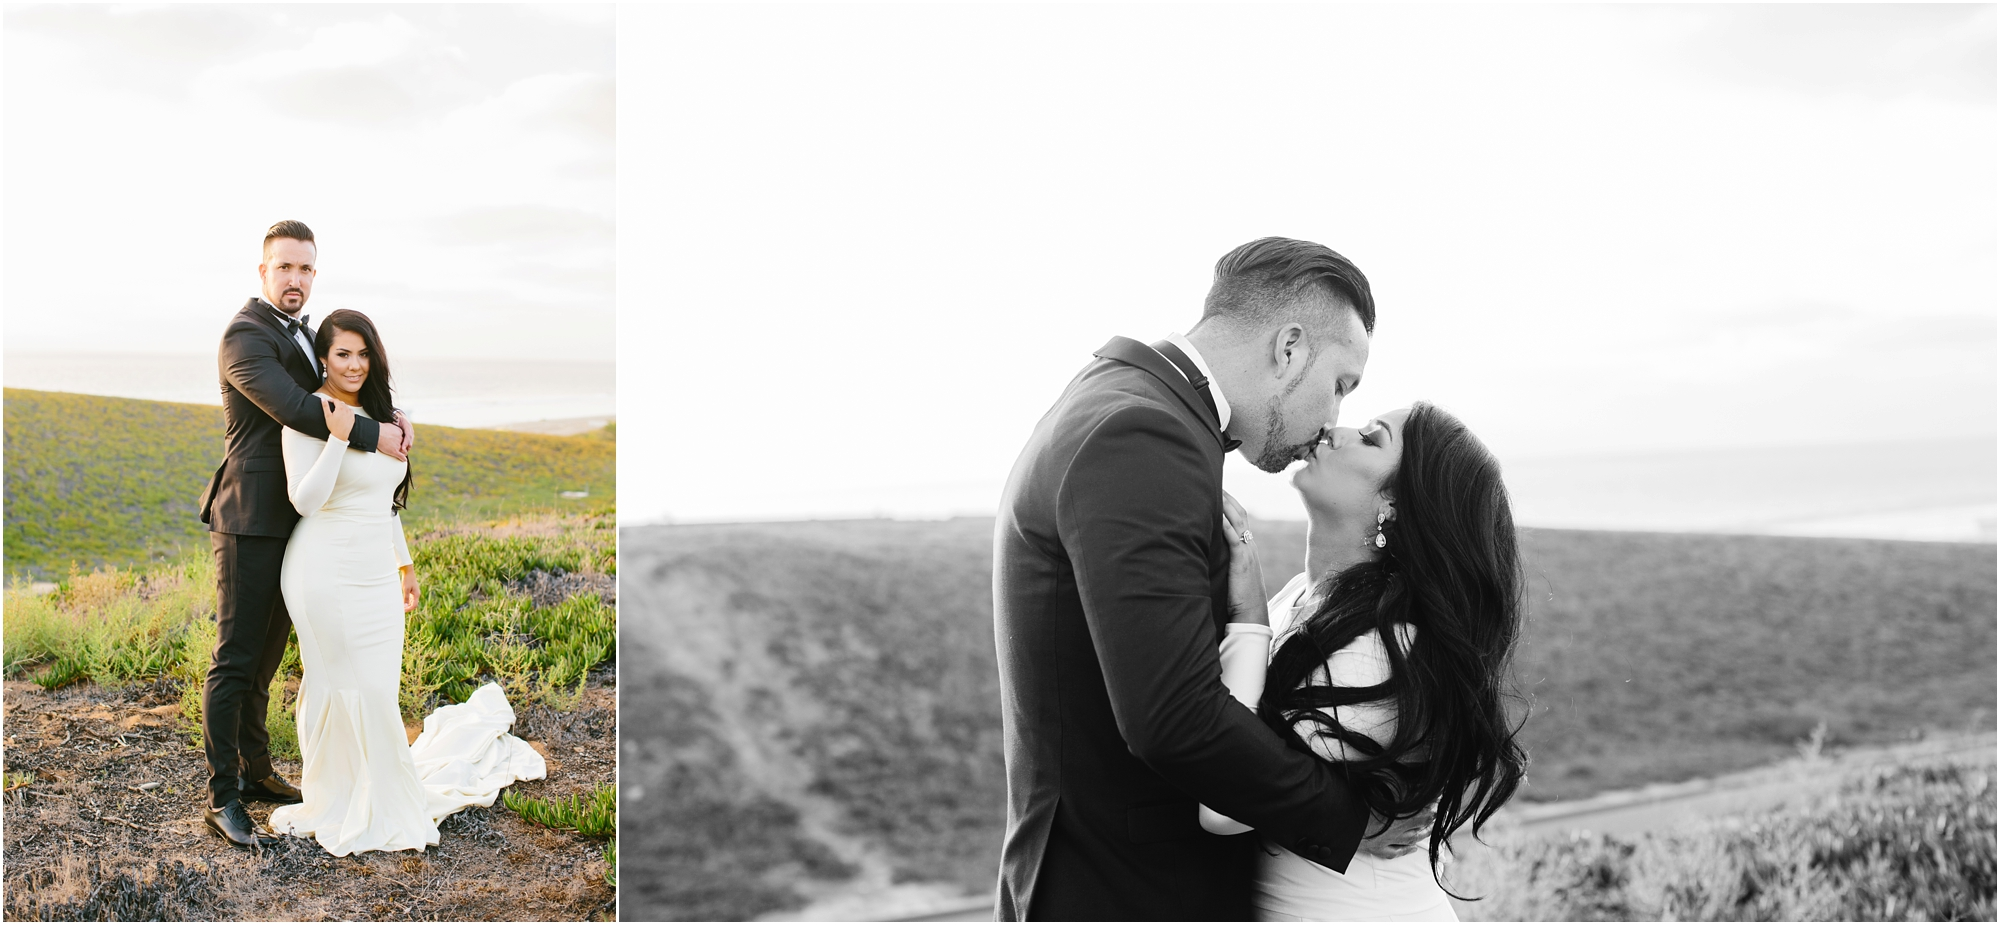 Romantic Bride and Groom Photos - http://brittneyhannonphotography.com